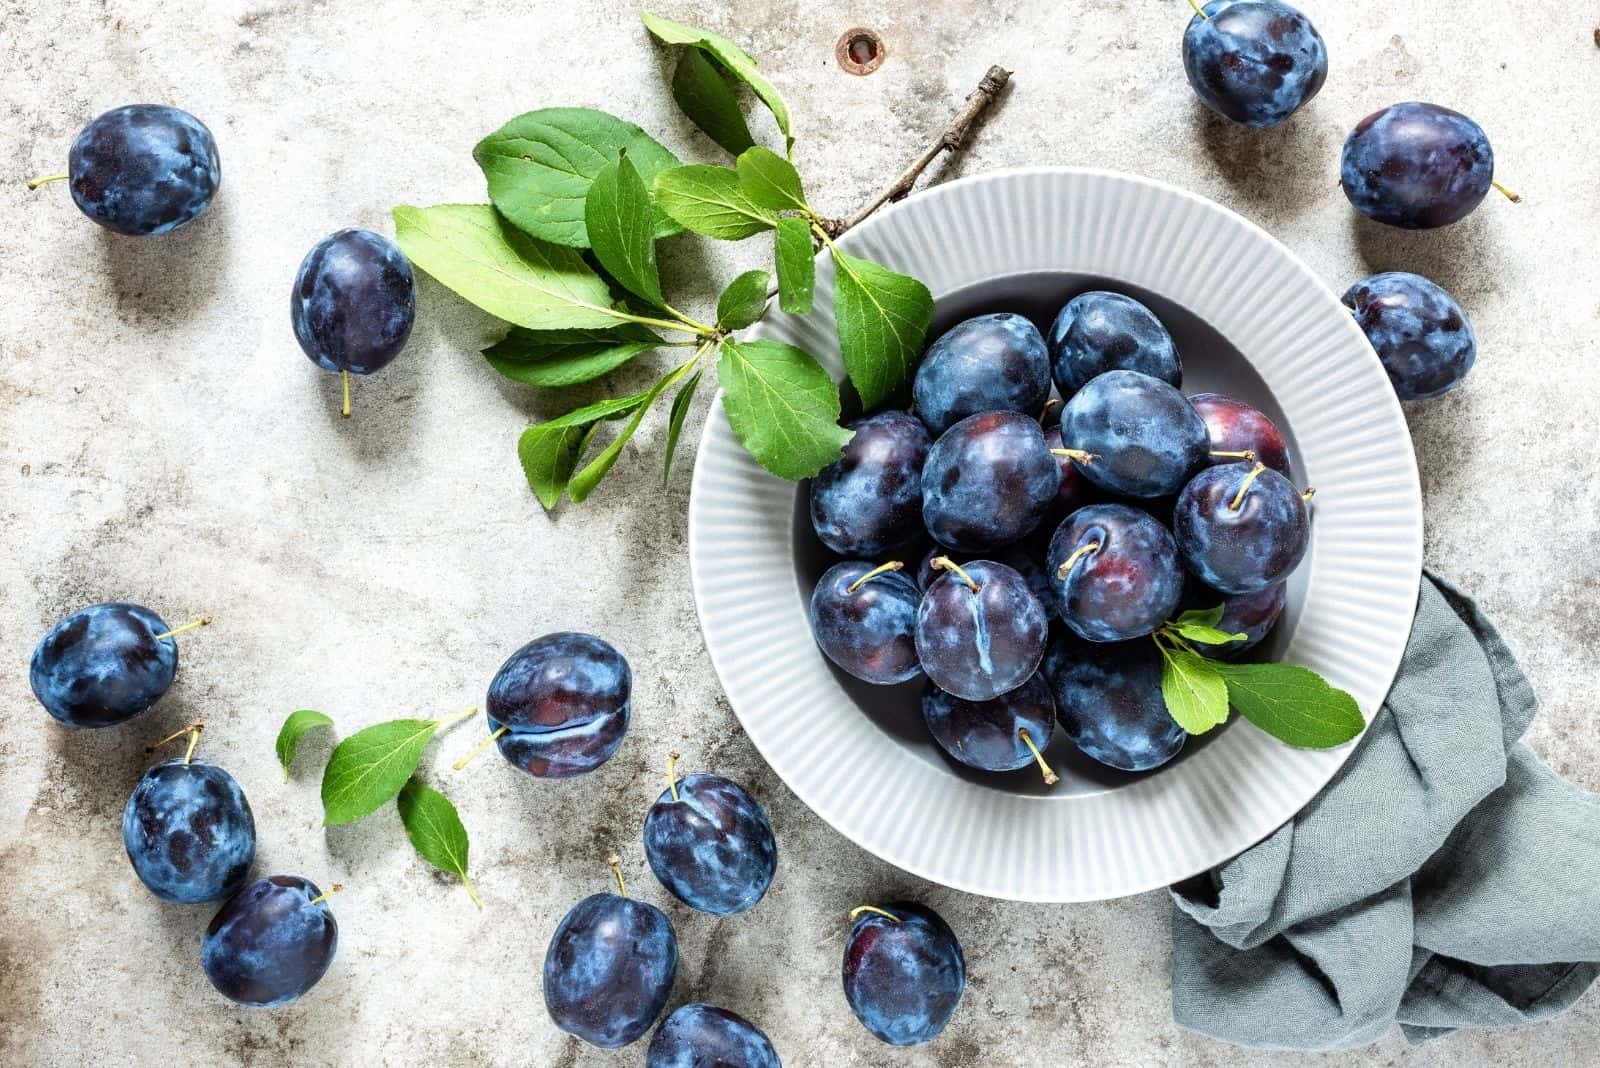 fresh plums on bowl with leaves on the table